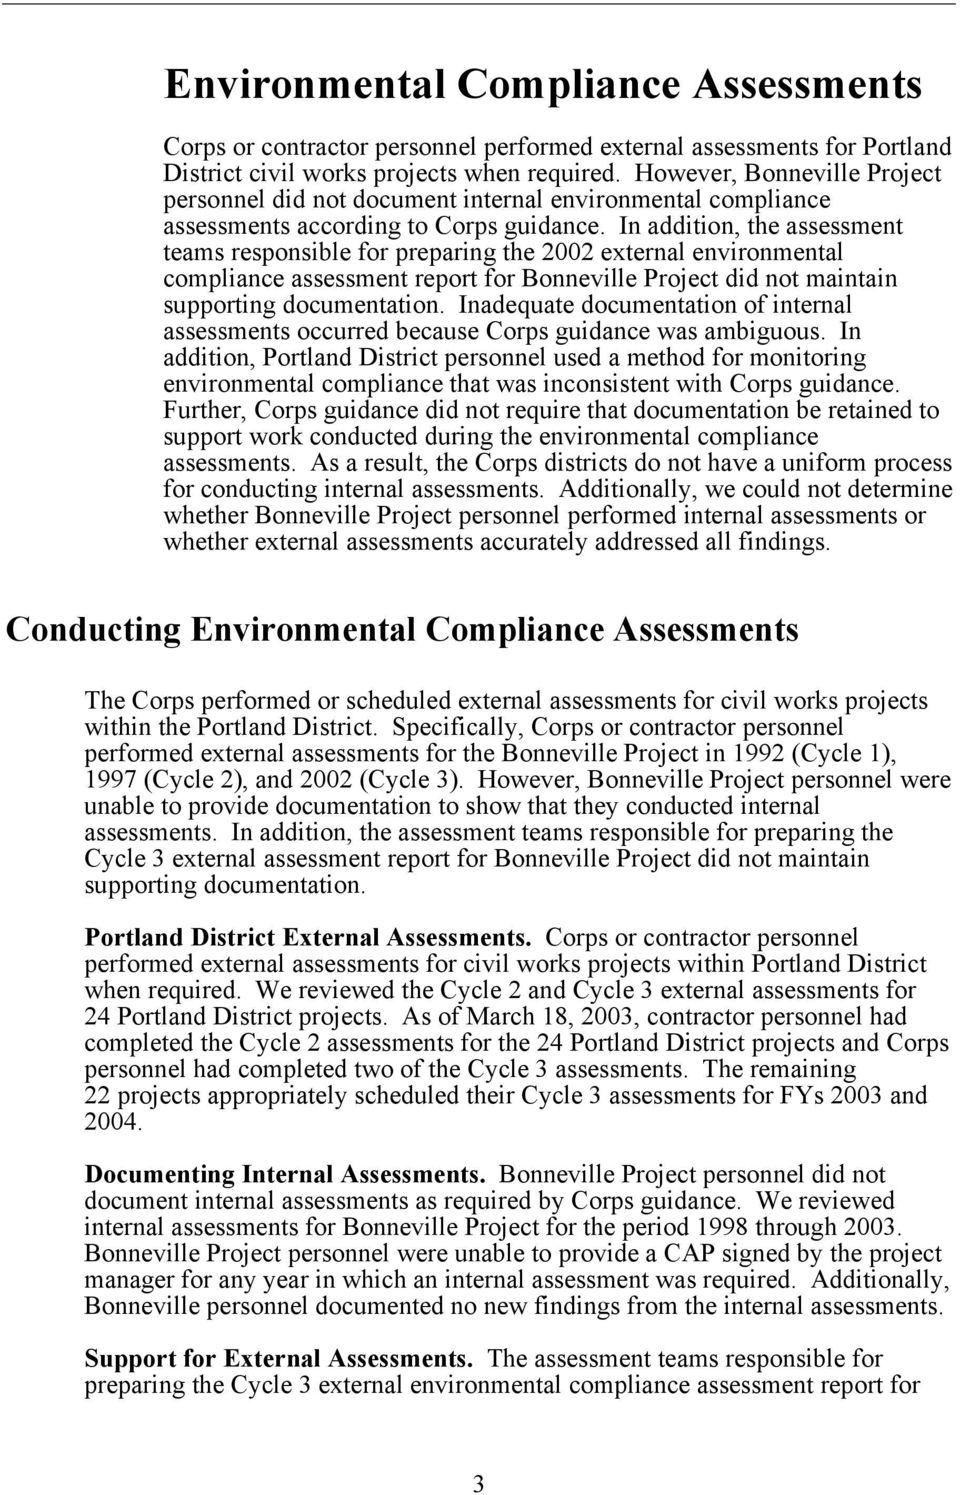 In addition, the assessment teams responsible for preparing the 2002 external environmental compliance assessment report for Bonneville Project did not maintain supporting documentation.